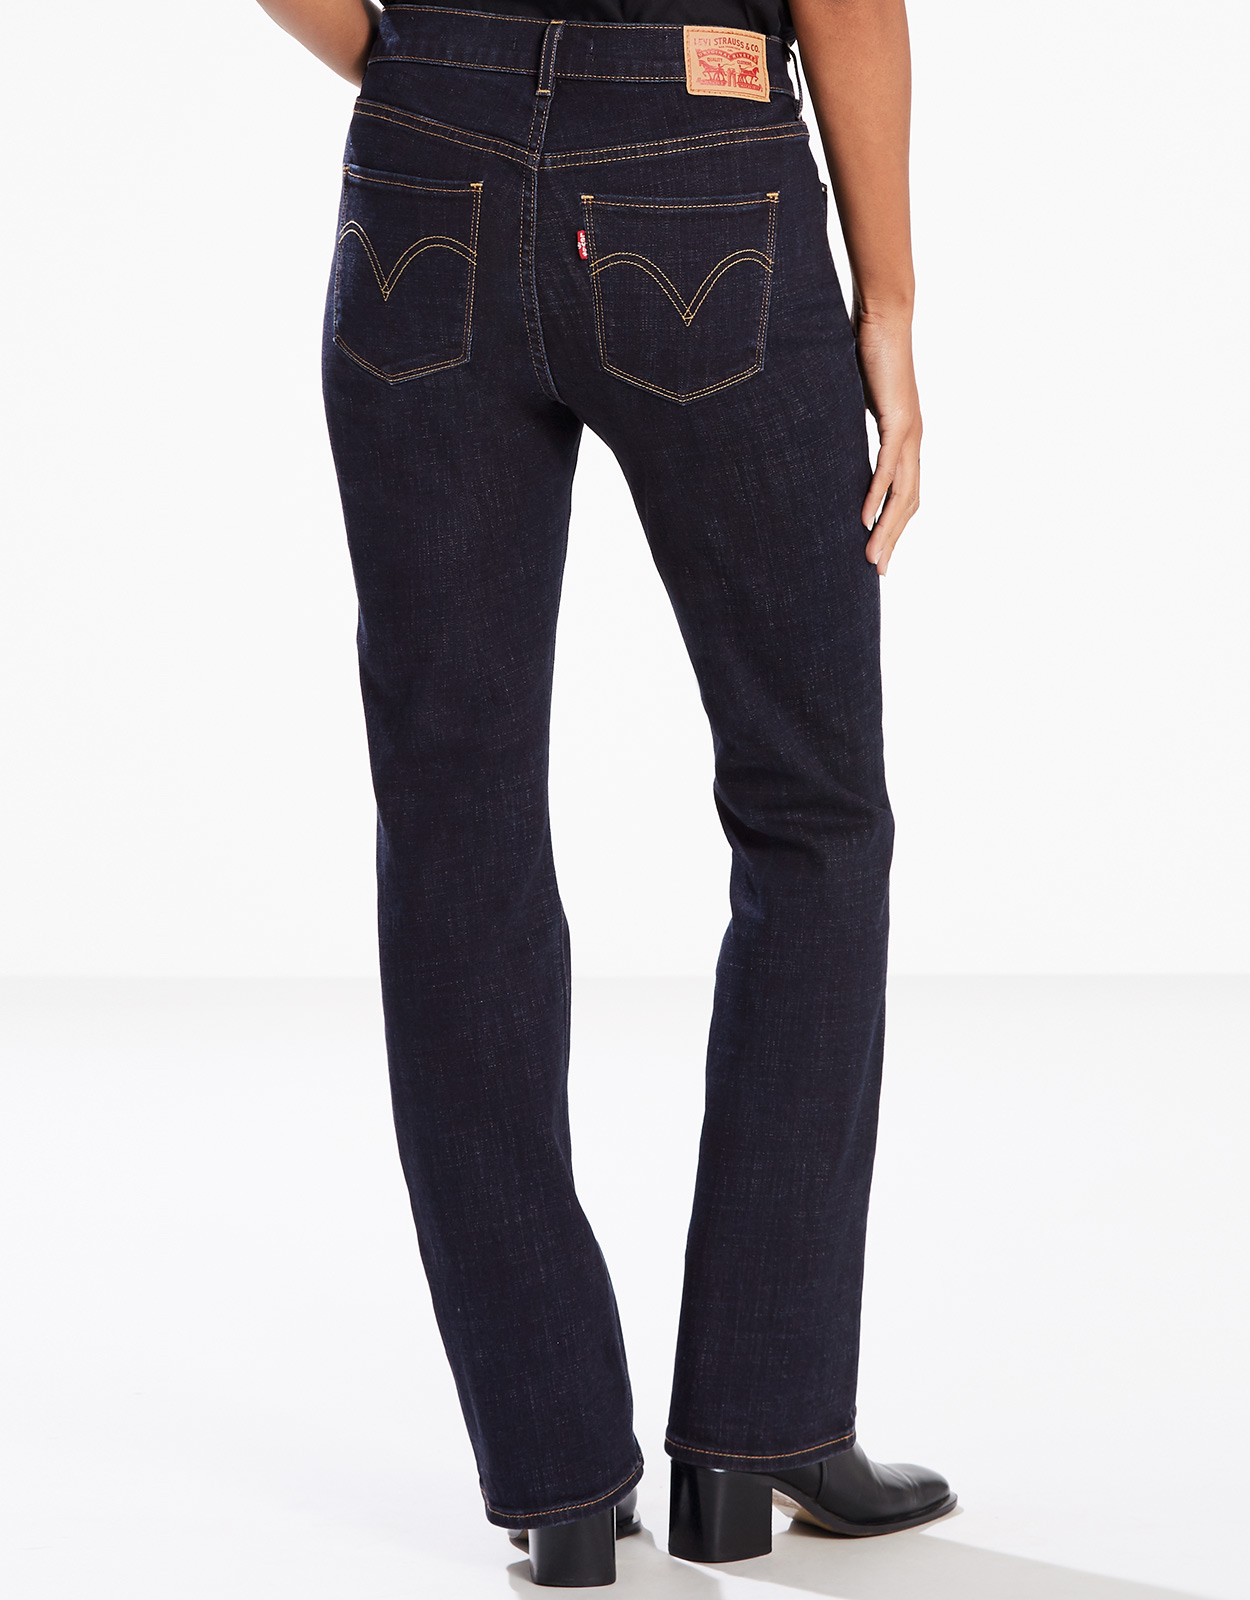 Levi's Women's Classic Bootcut Stretch Mid Rise Easy Fit Boot Cut Jeans - Island Rinse